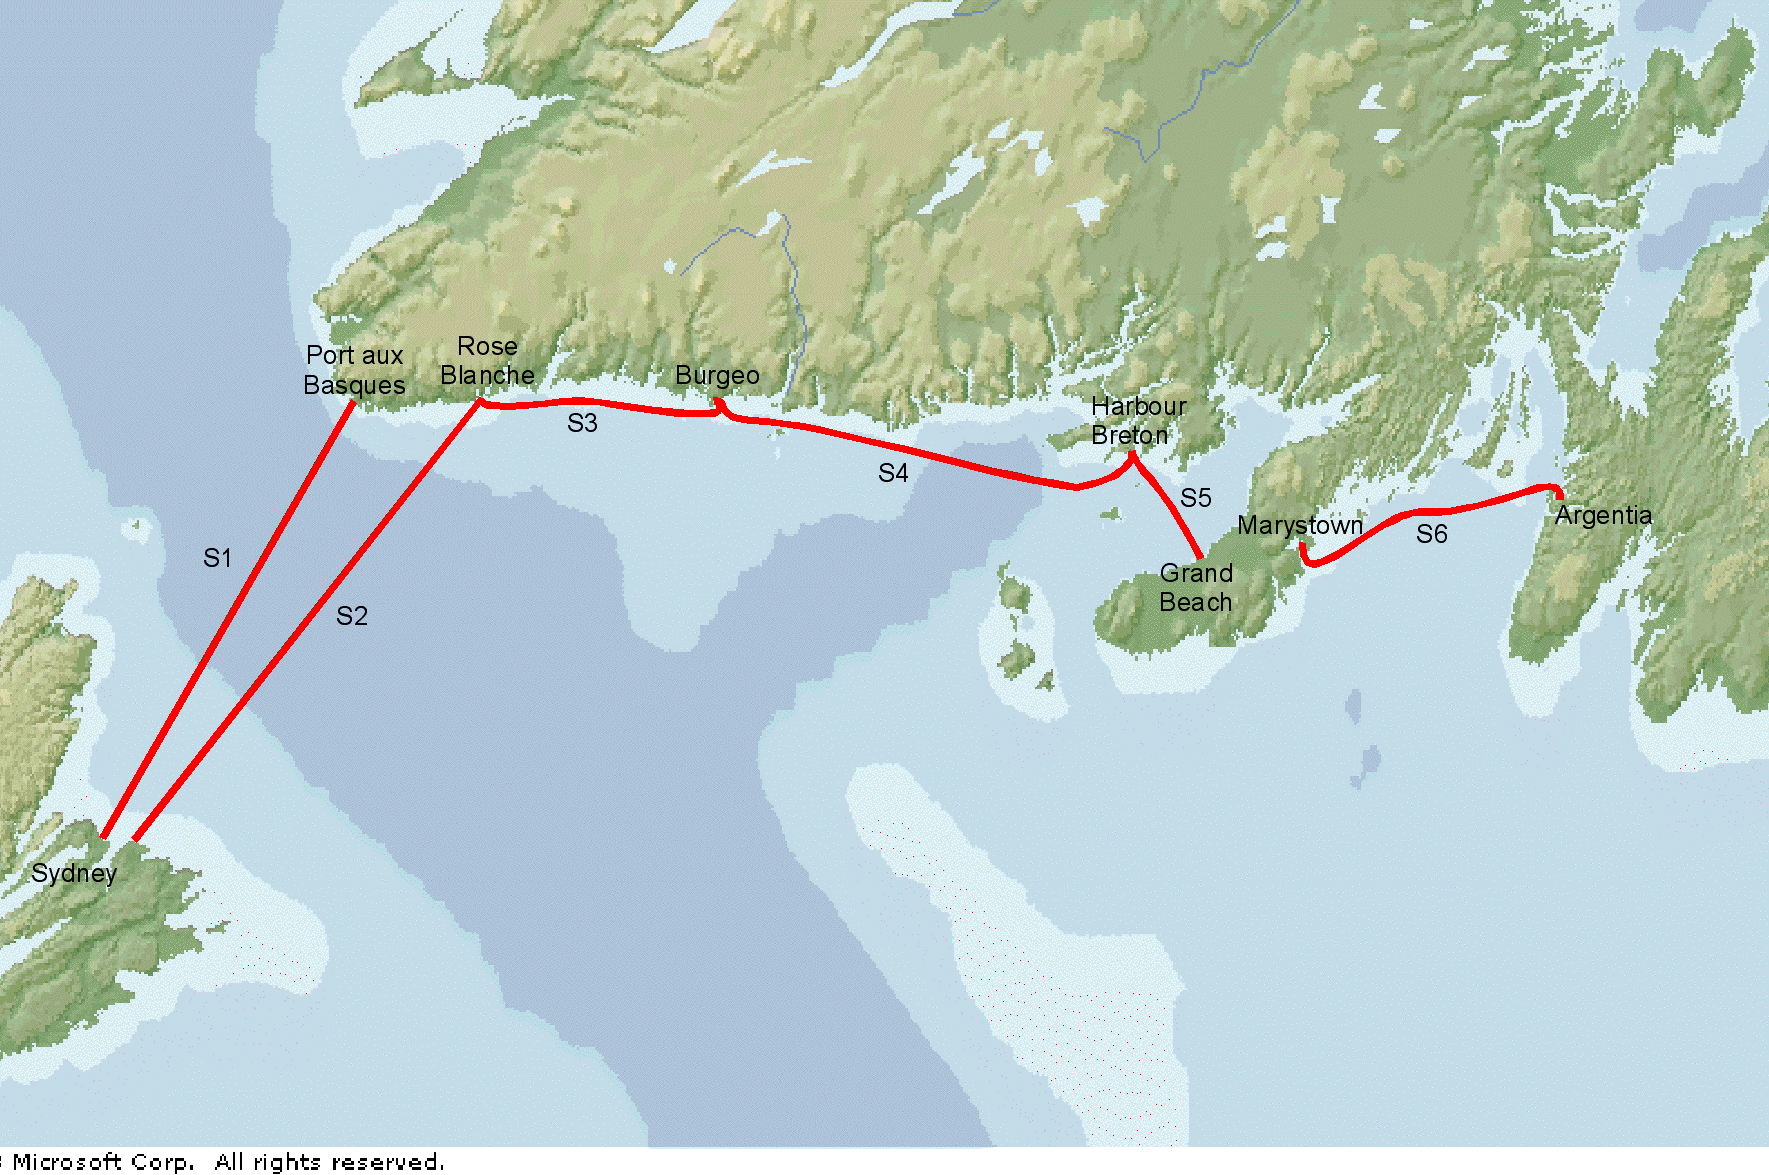 Undersea cables between Newfoundland, PEI and Cape Breton